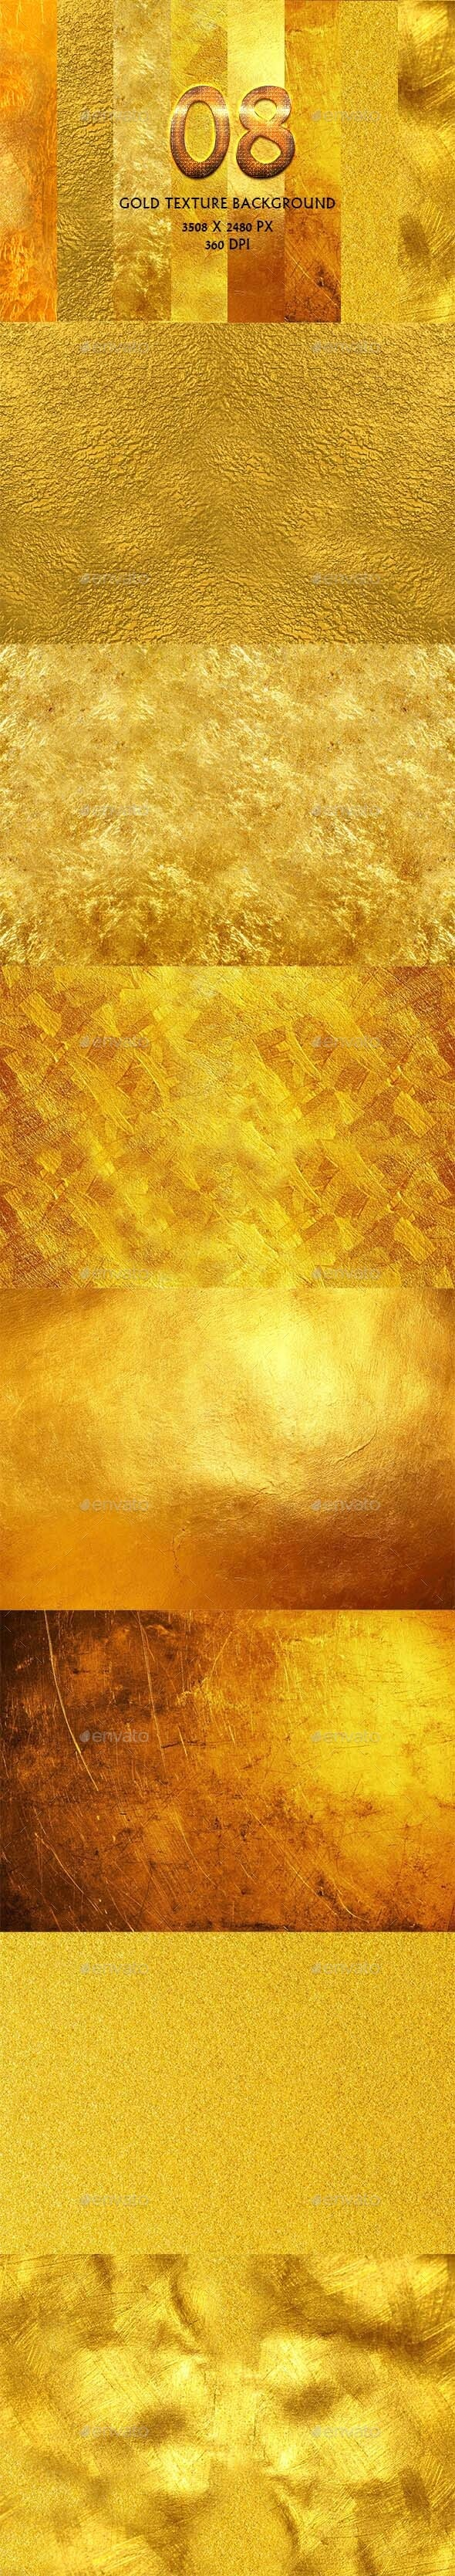 8 Gold Texture Background - Backgrounds Graphics